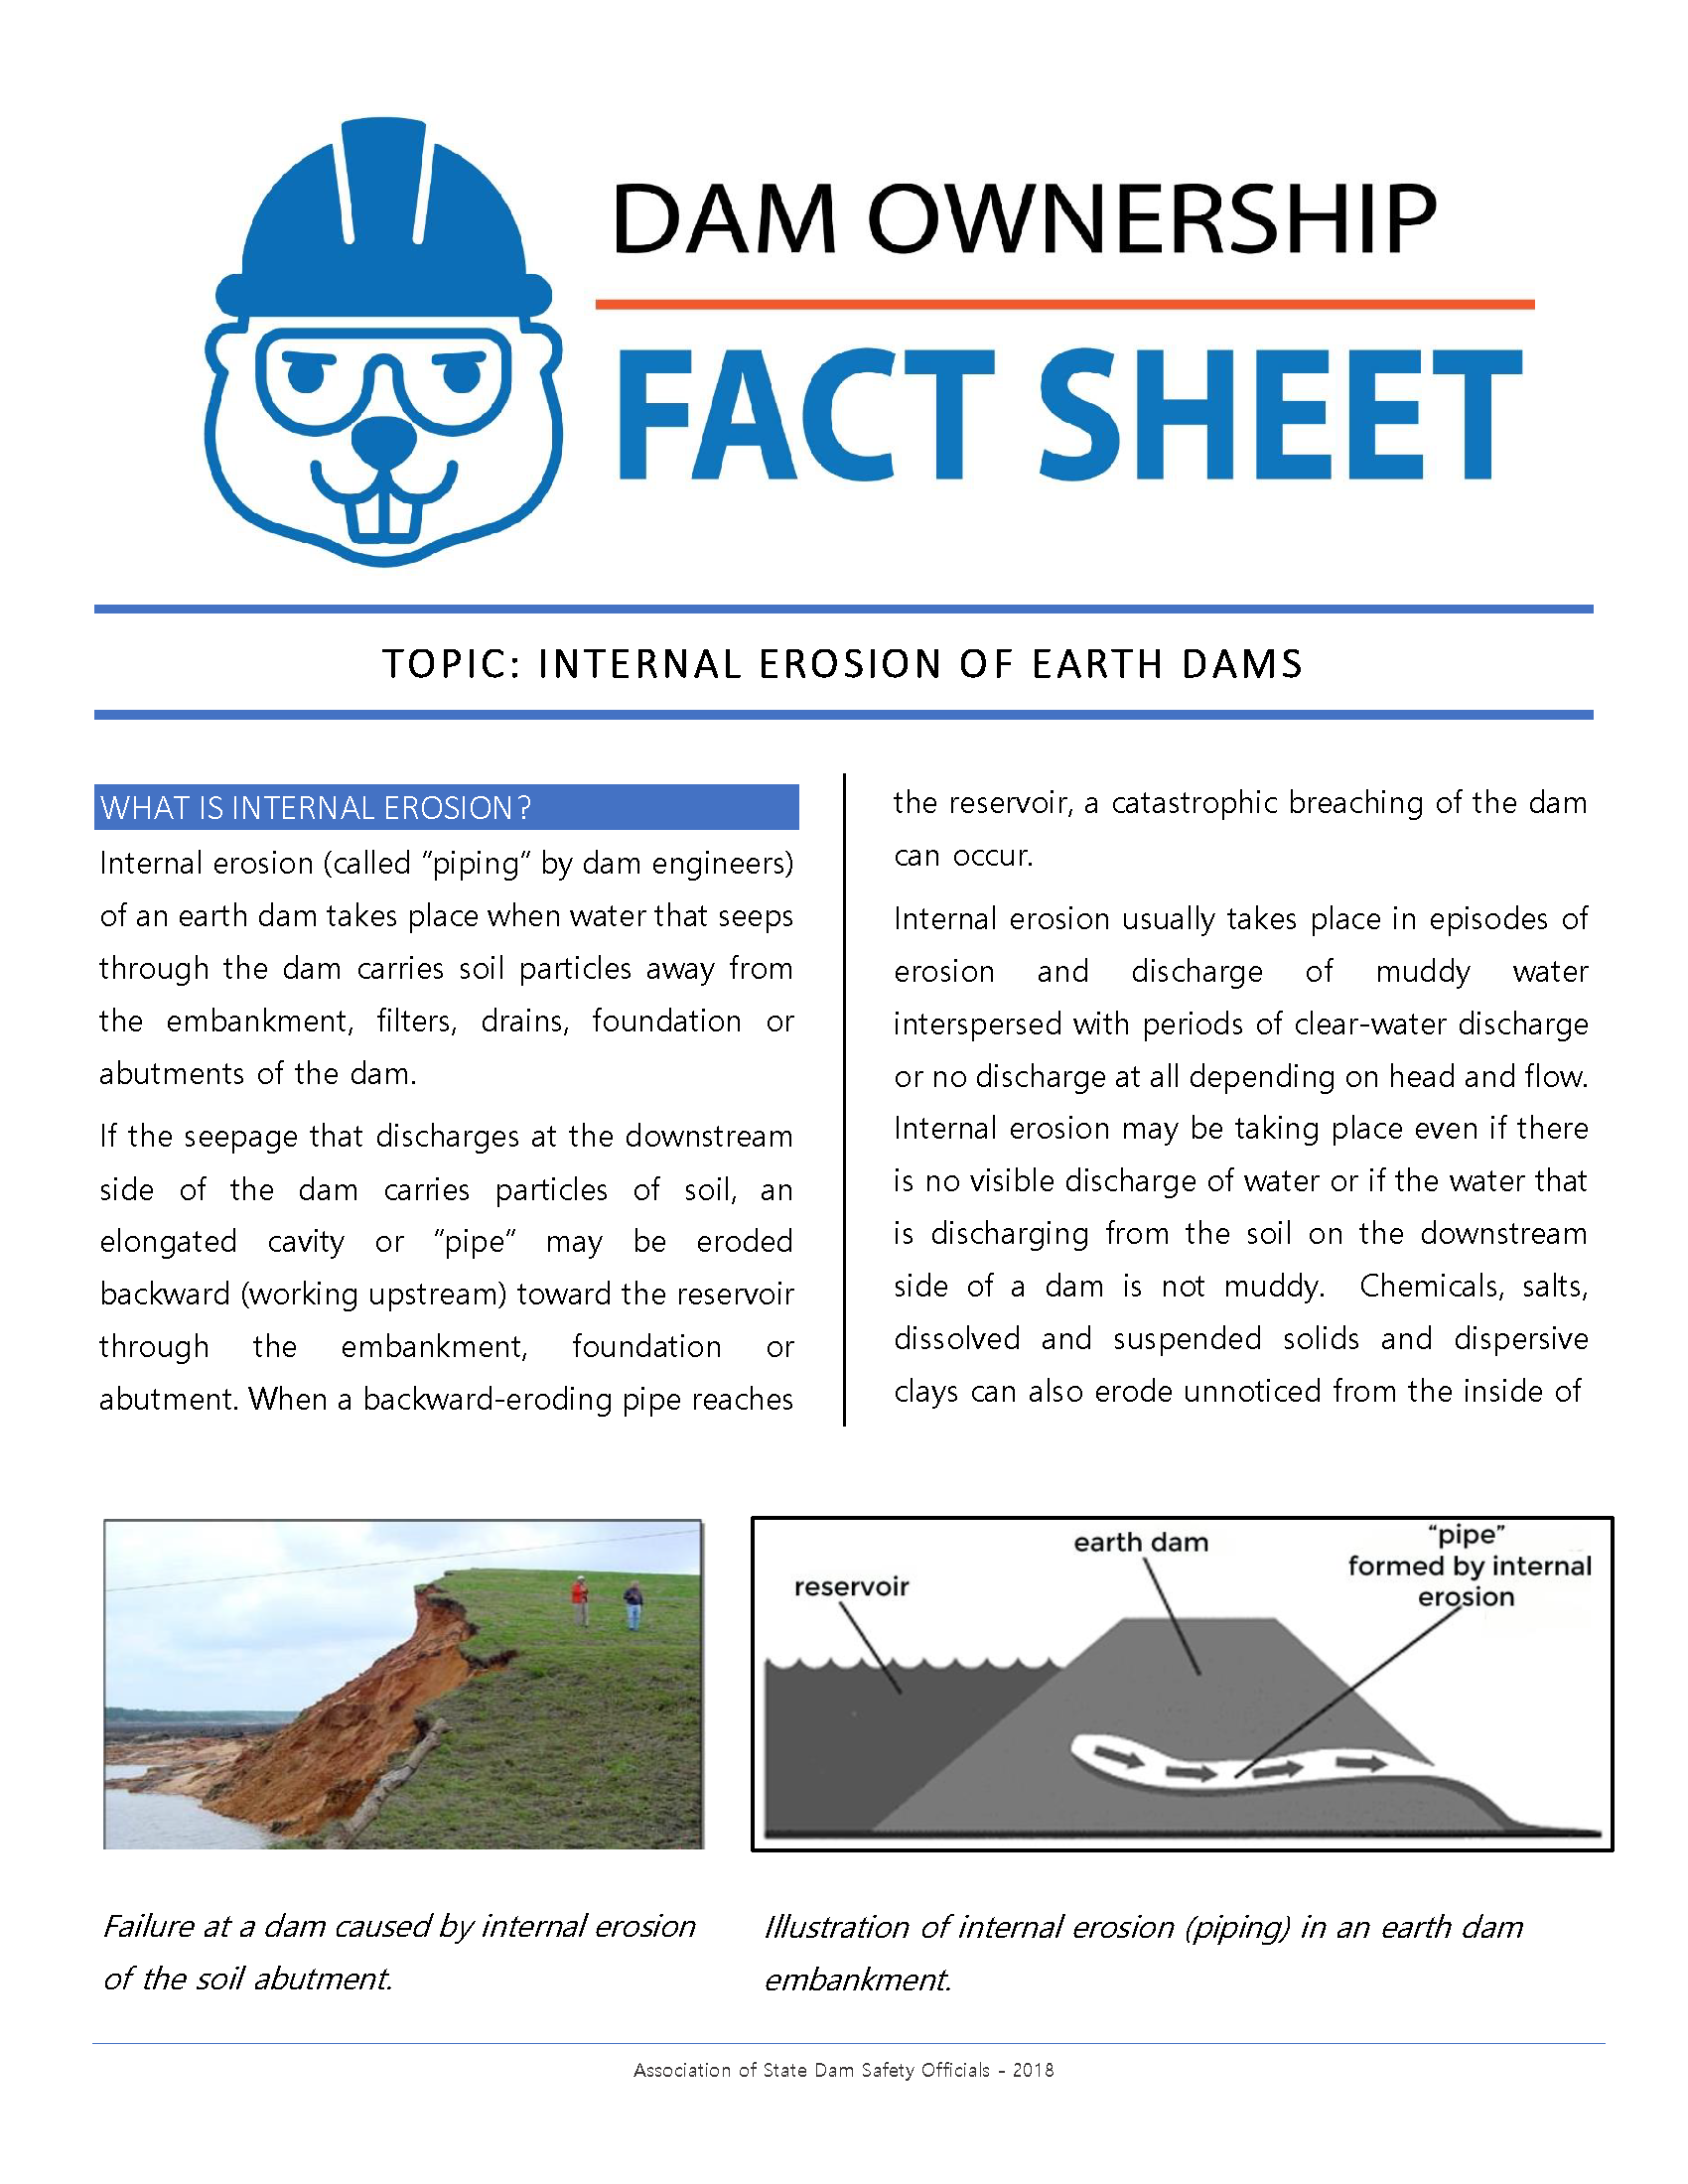 Internal Erosion of Earth Dams Fact Sheet 2018_Page_1.png